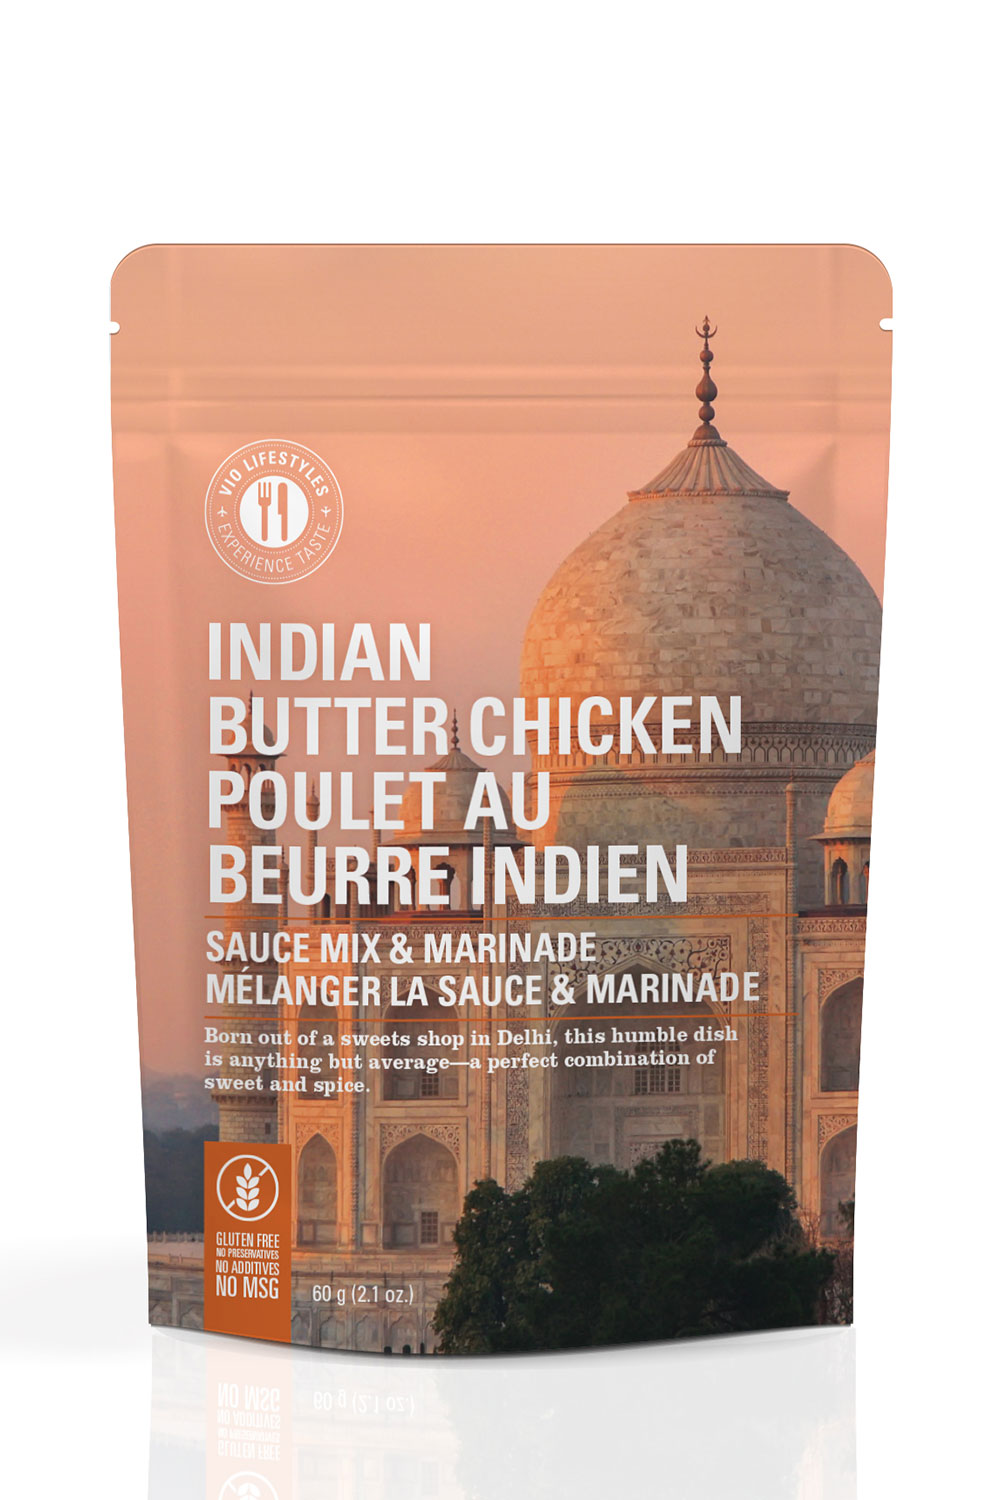 Vio_Product_Spices_IndianButterChickenFront.jpg